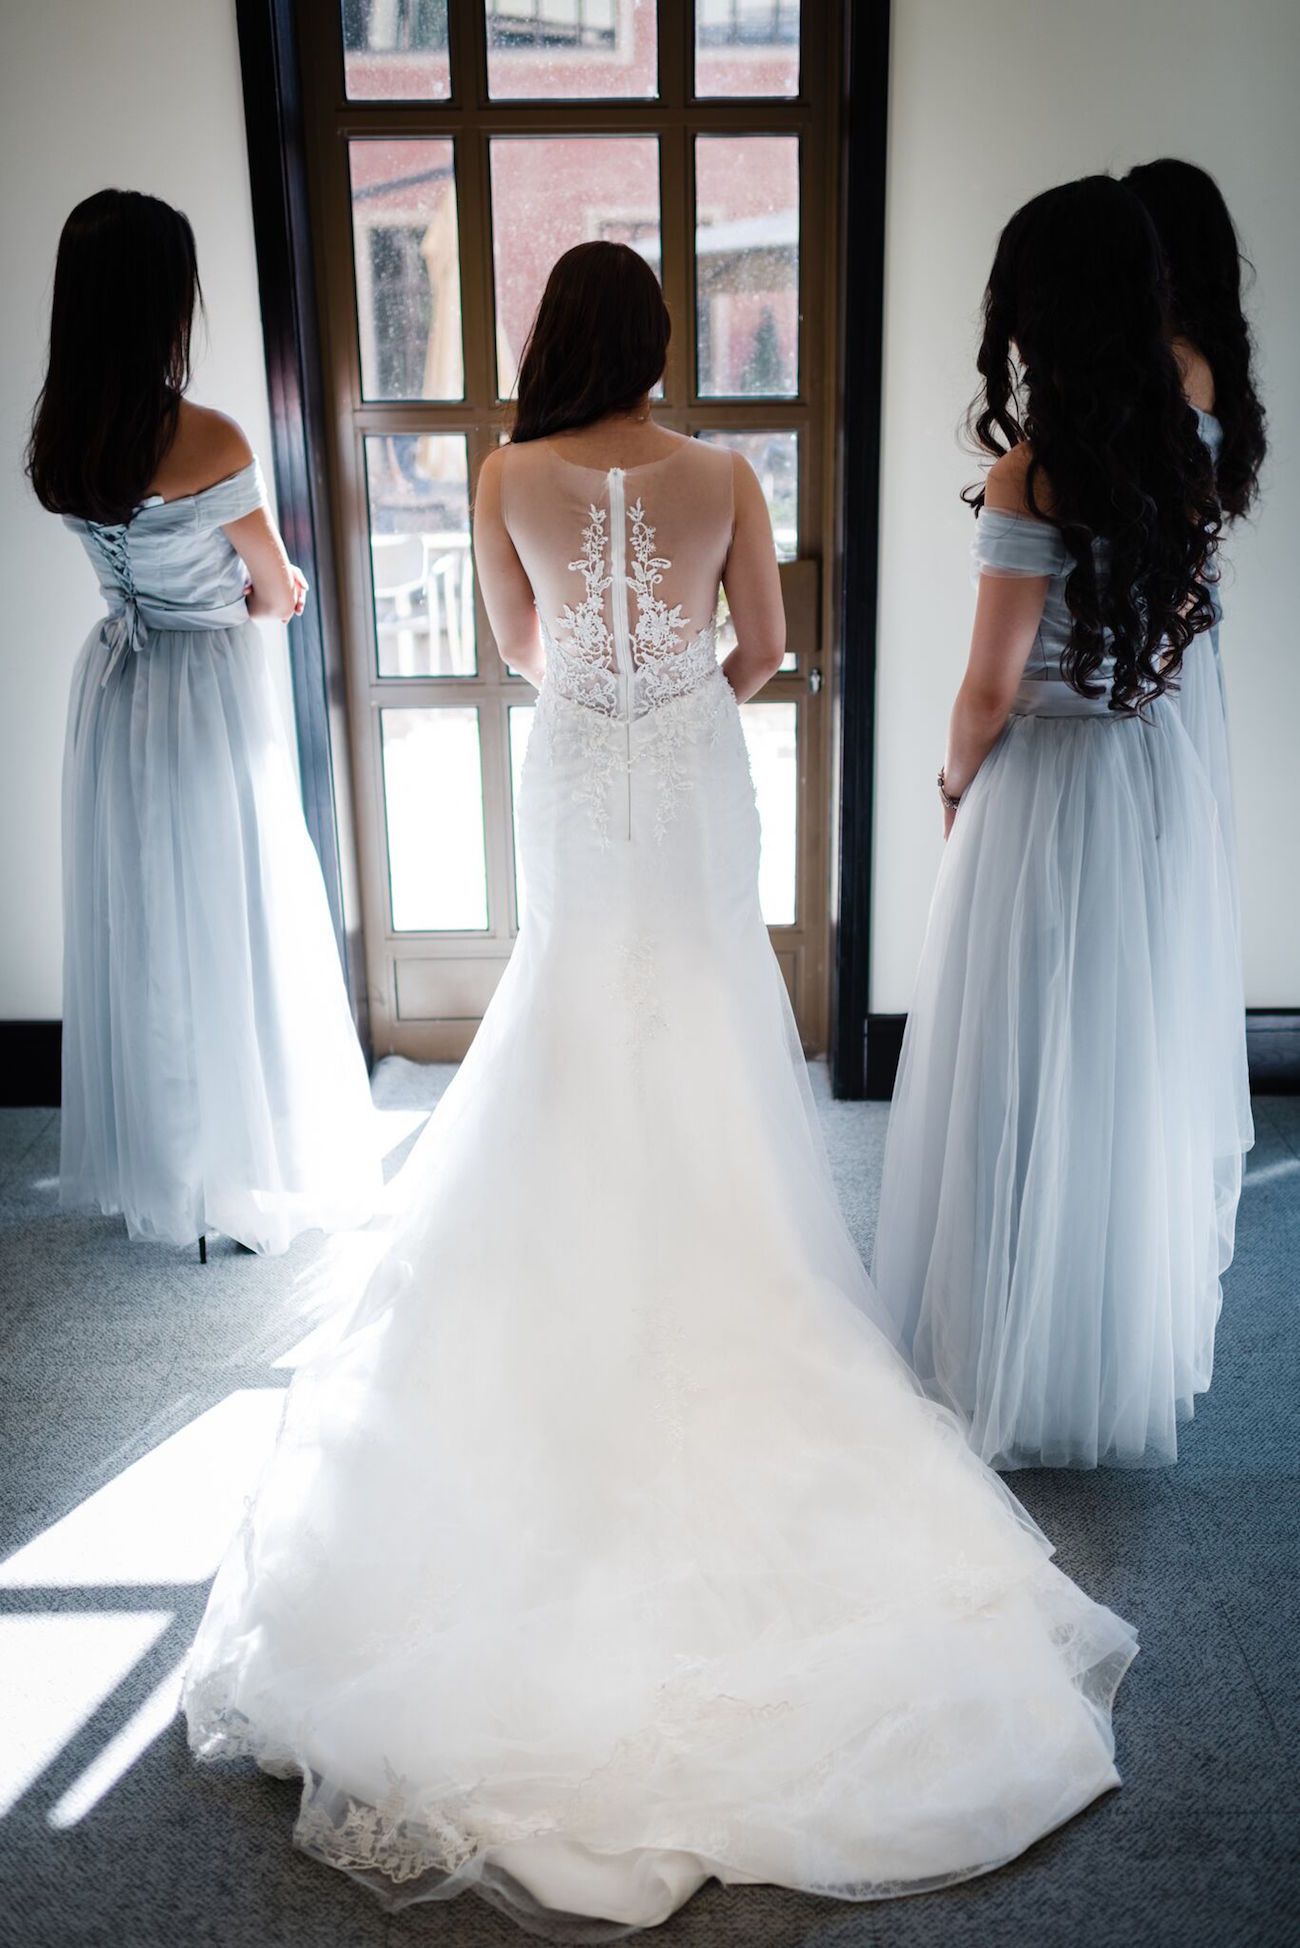 Bridesmaids in Silver Grey Dresses and Bride in Elie Saab | Image: Wynand van der Merwe